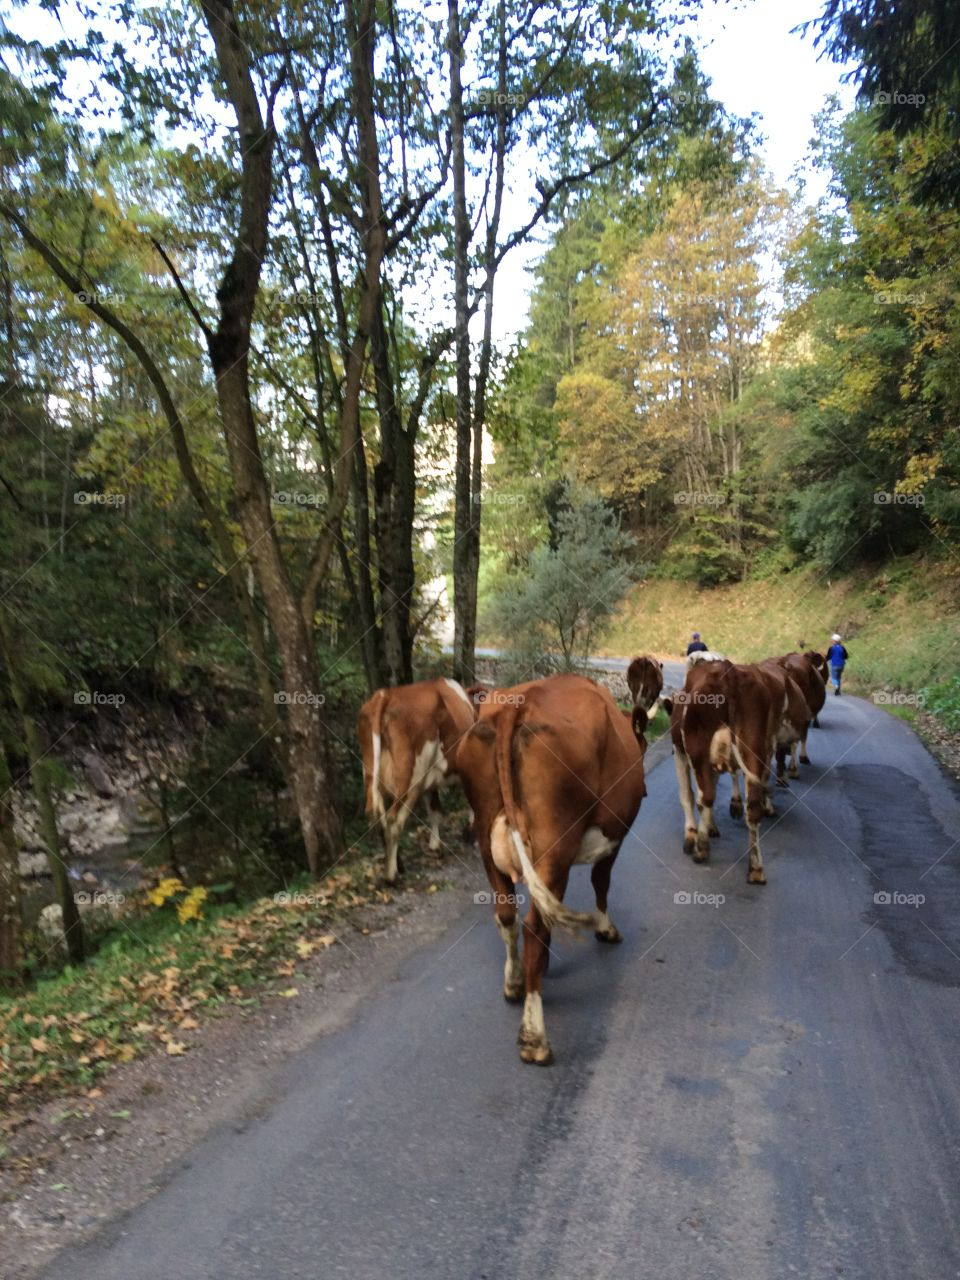 Cows coming down from Mountain in Switzerland.